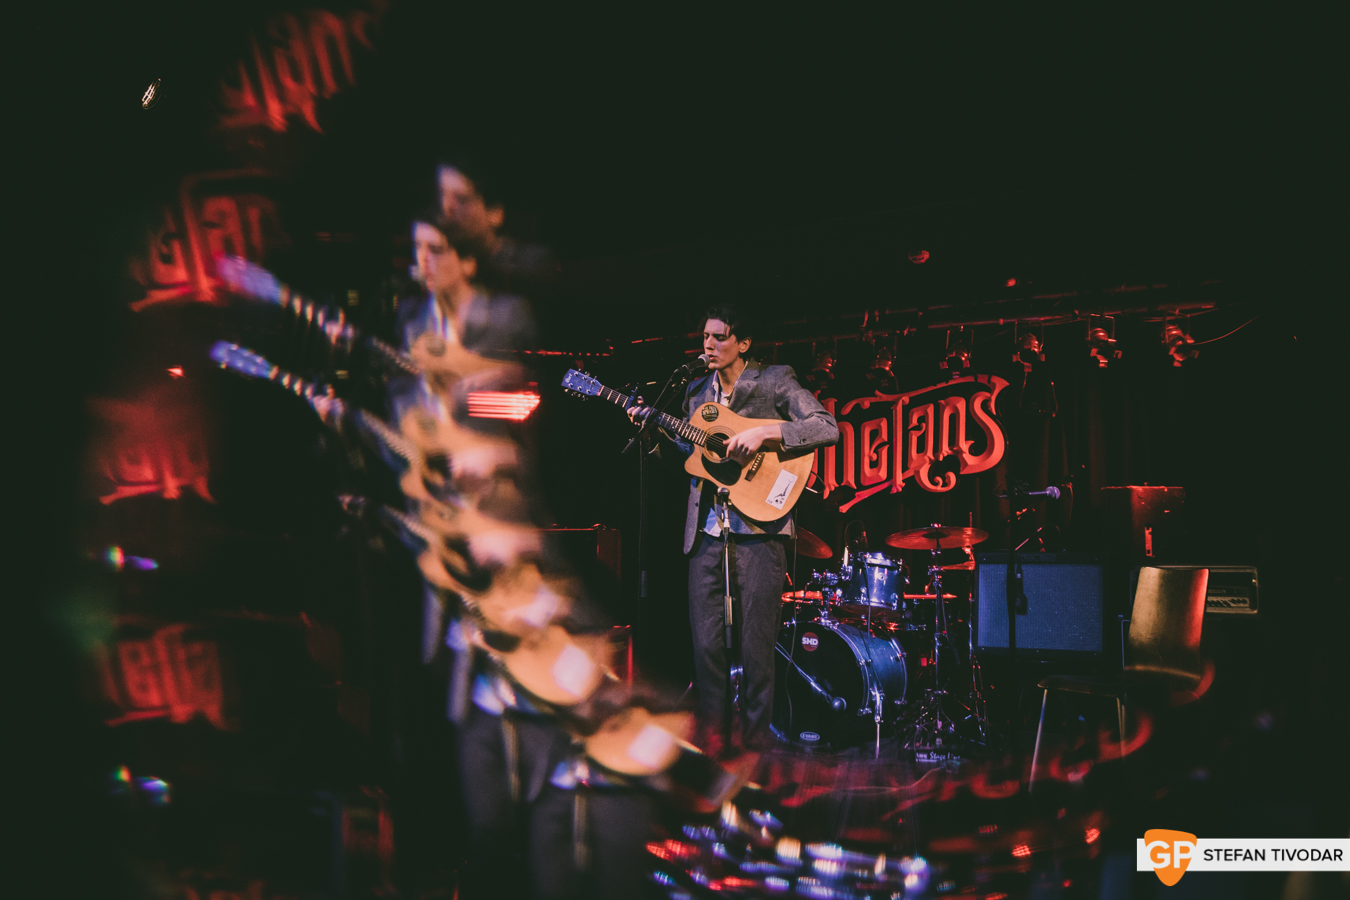 Mike Paterson Ones to Watch January 2019 Whelans Tivodar 4